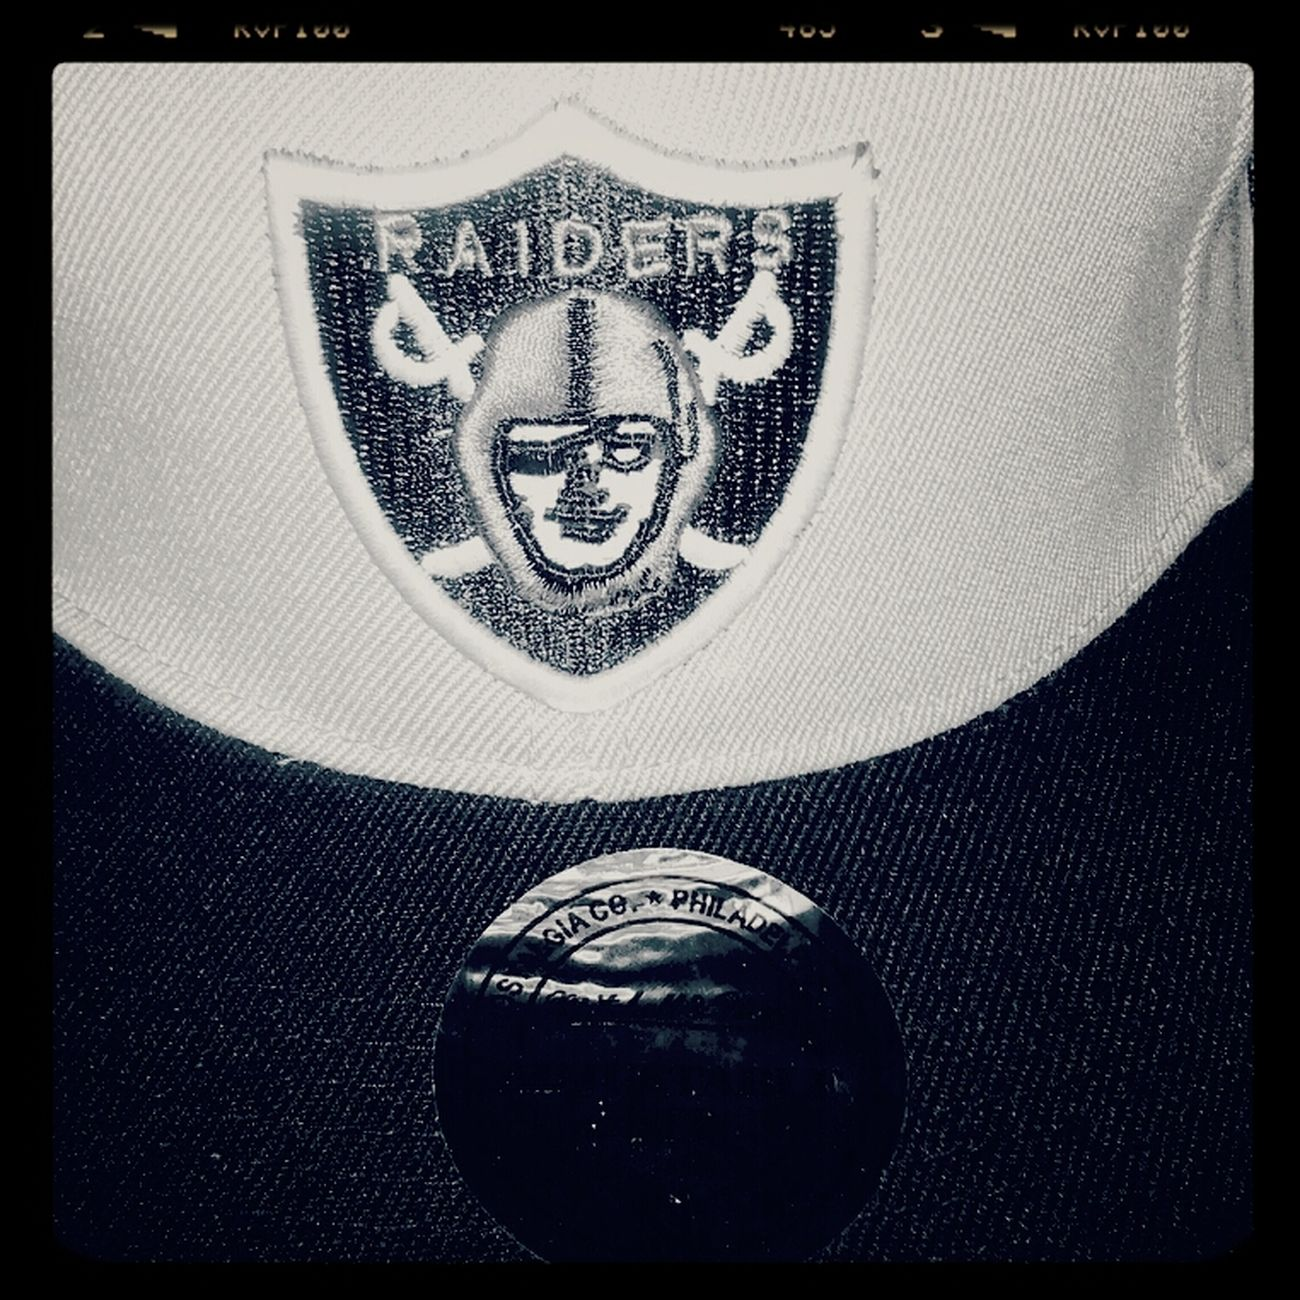 Who else is a Raider fan? C: